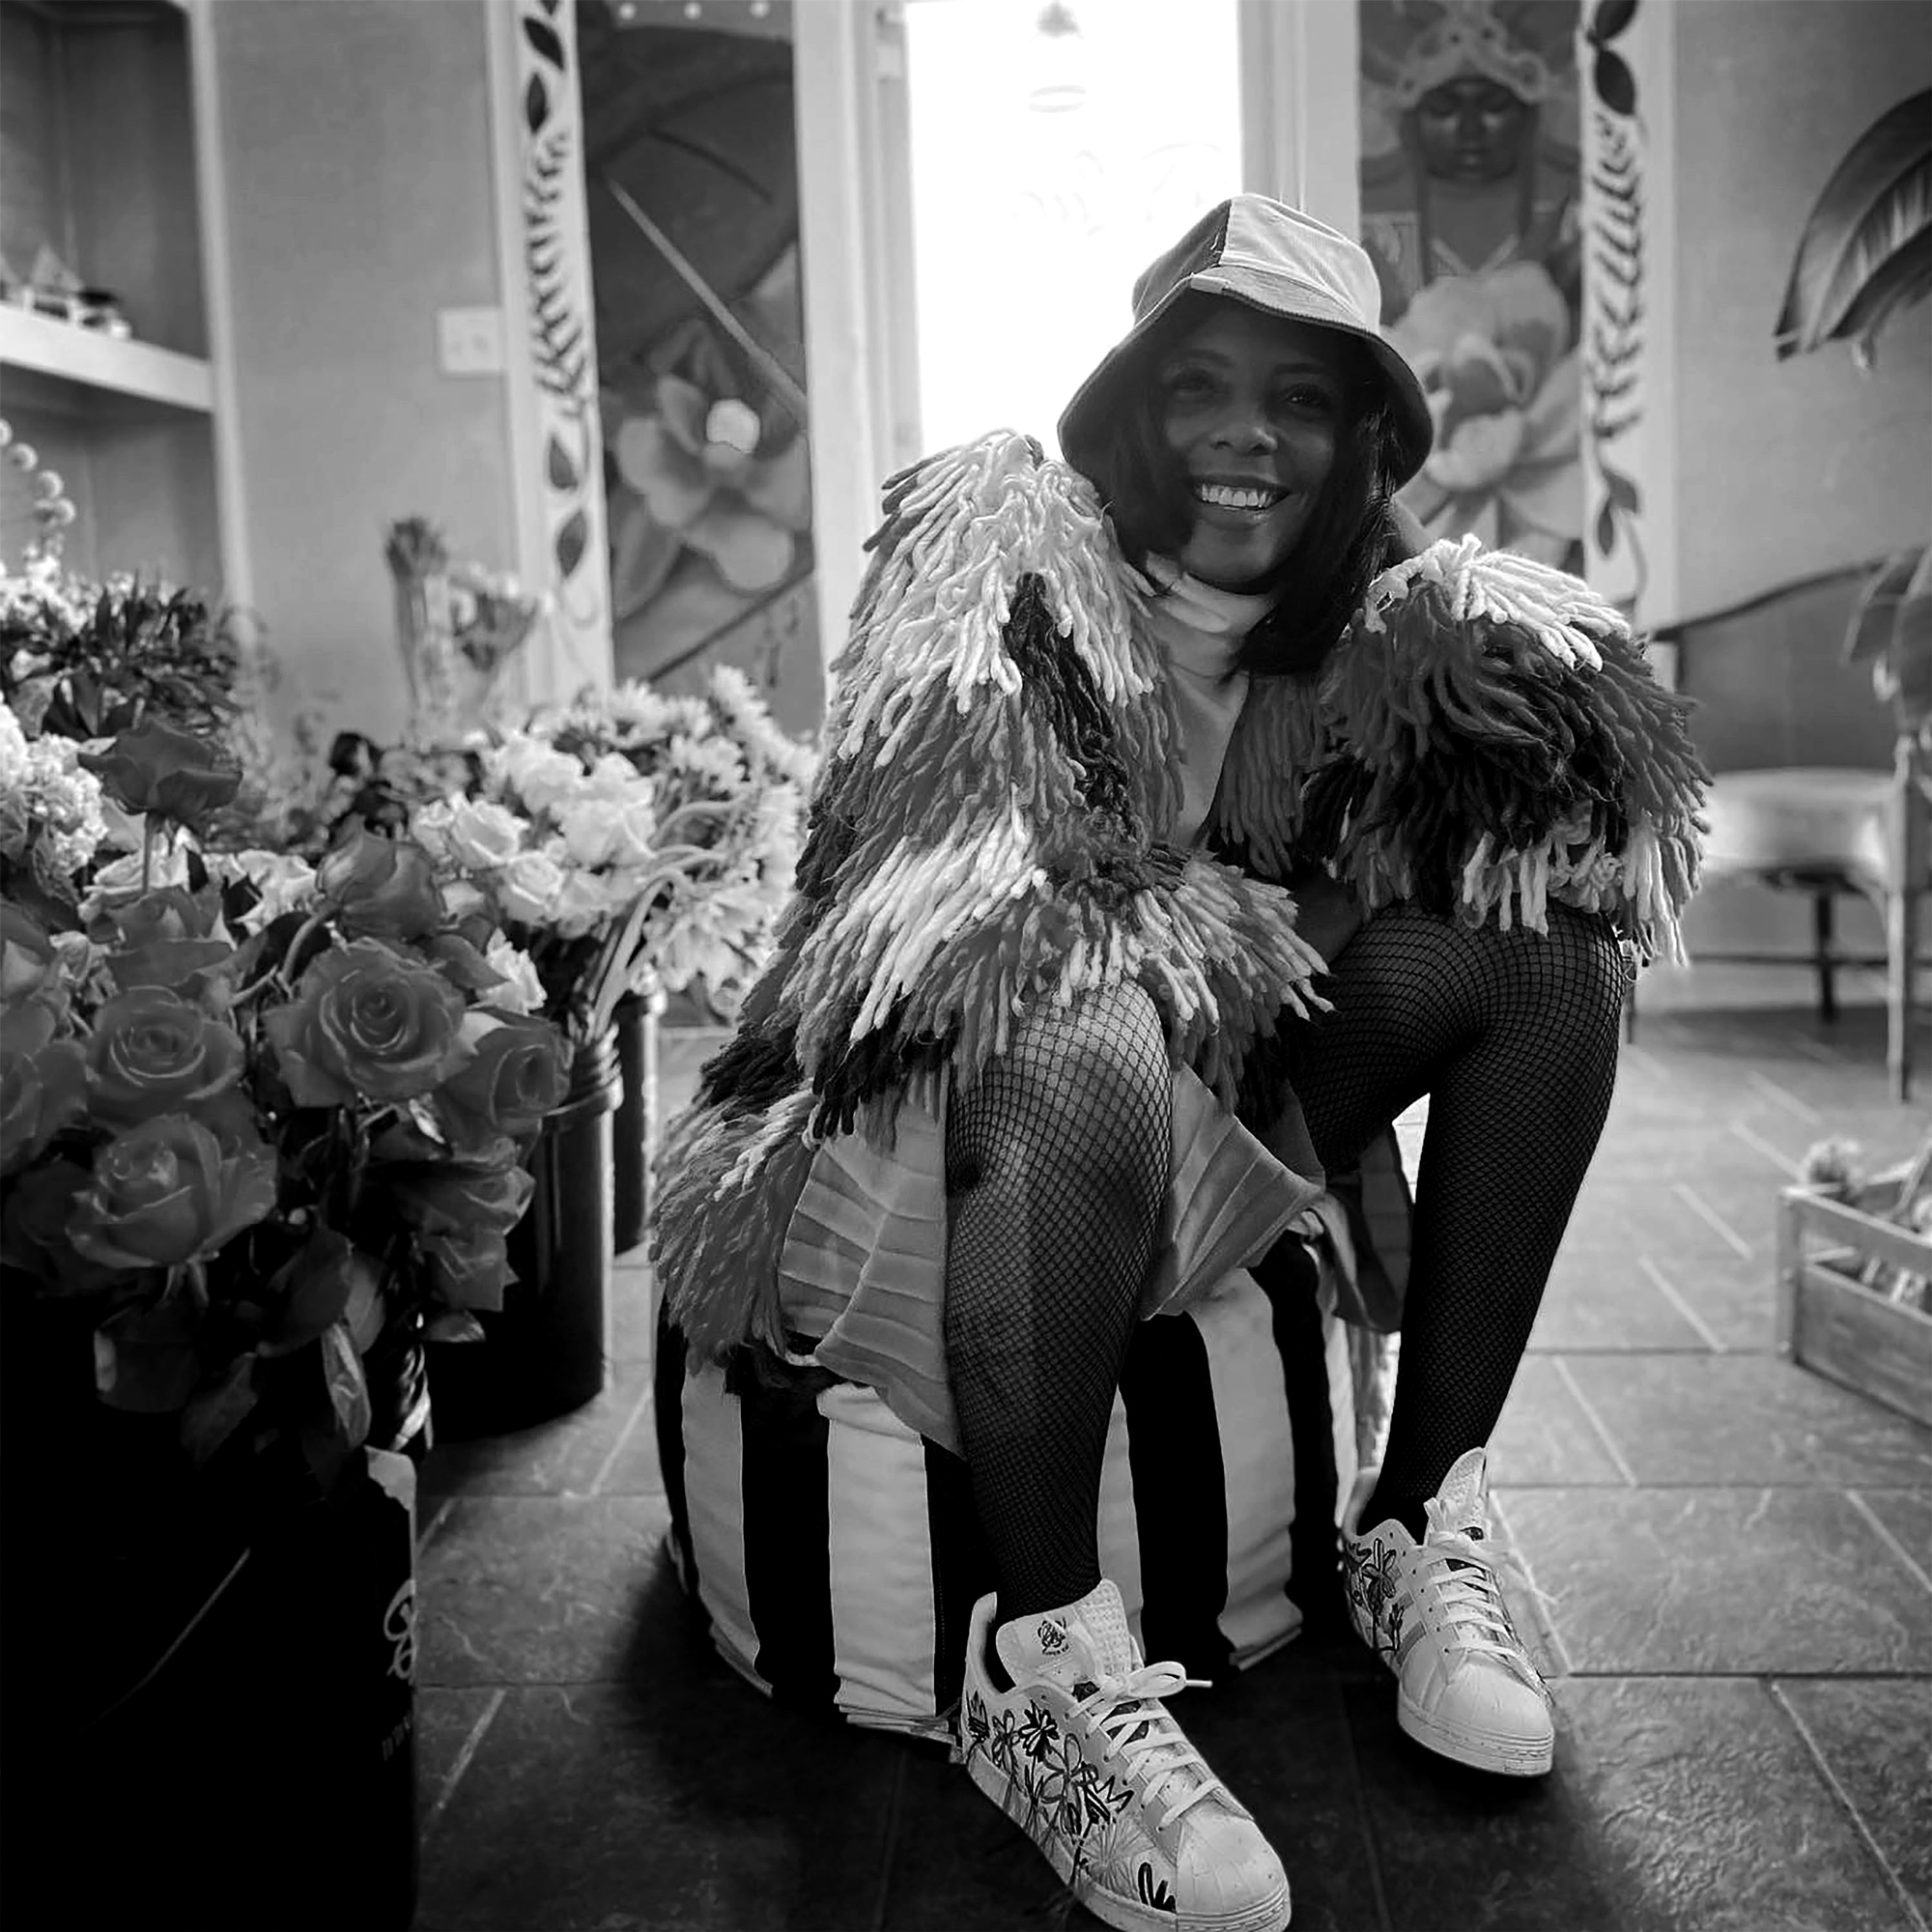 A black and white photo of Brandi Charlot sitting, in costume, surrounded by flowers. She is a Black woman and she's wearing a bucket hat, fishnets, and a jacket with lots of differently colored tassels. She's smiling widely and is looking slightly above the camera. Around her are many different bouquets of flowers. Photo courtesy of Brandi Charlot.